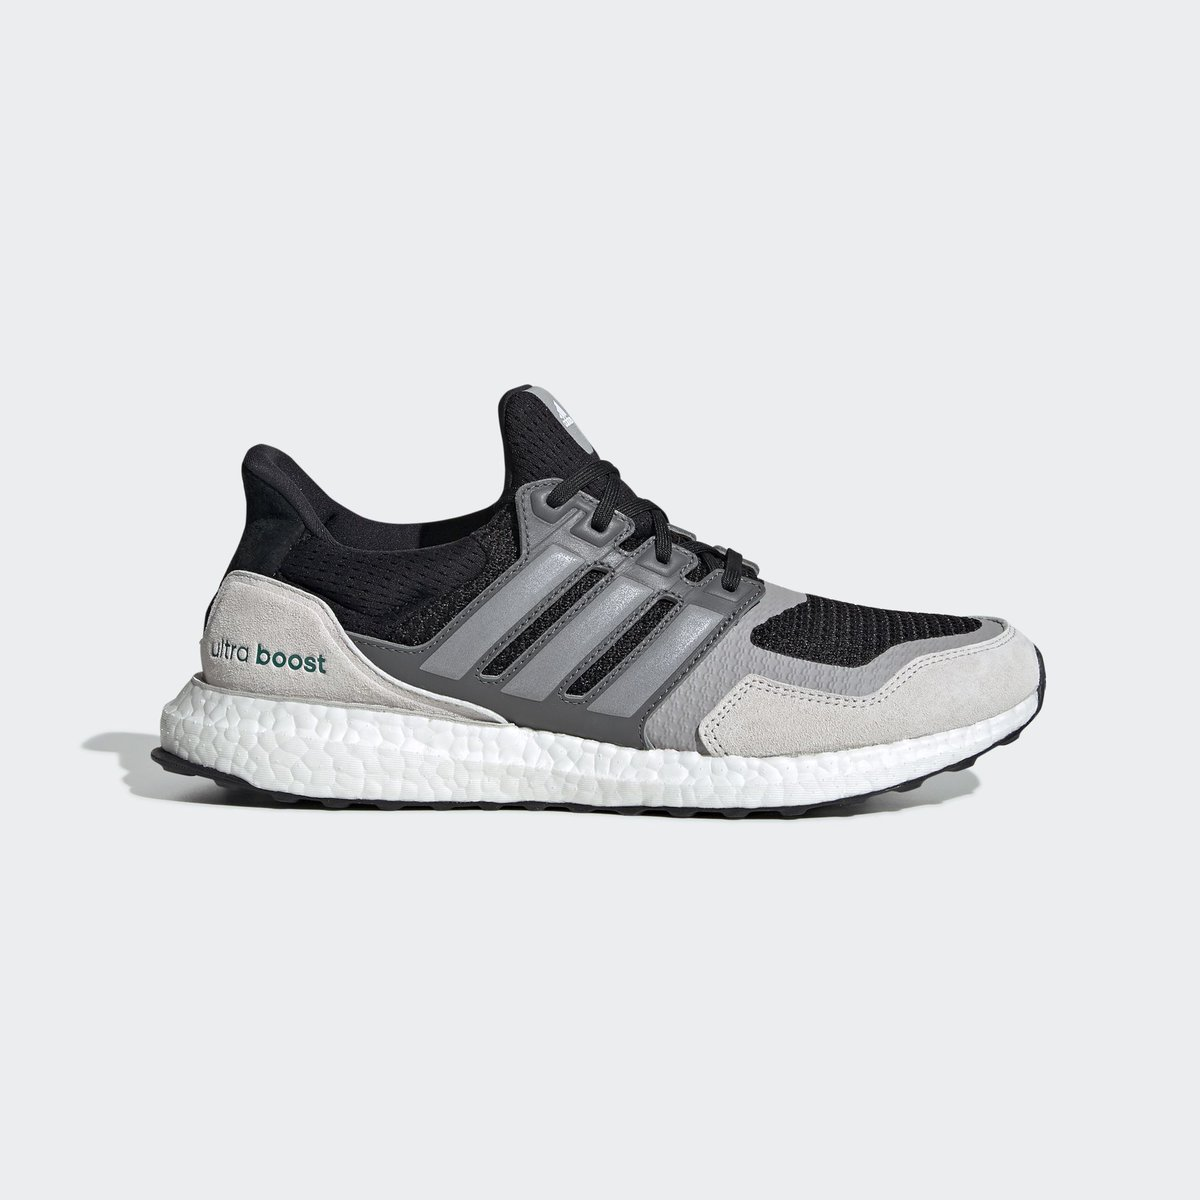 07f84fe96ffab Available early on  jdsportsus. adidas Ultra Boost Suede   Leather. —   http   bit.ly 2VsdCJQ  adpic.twitter.com lfhtZKD6NR